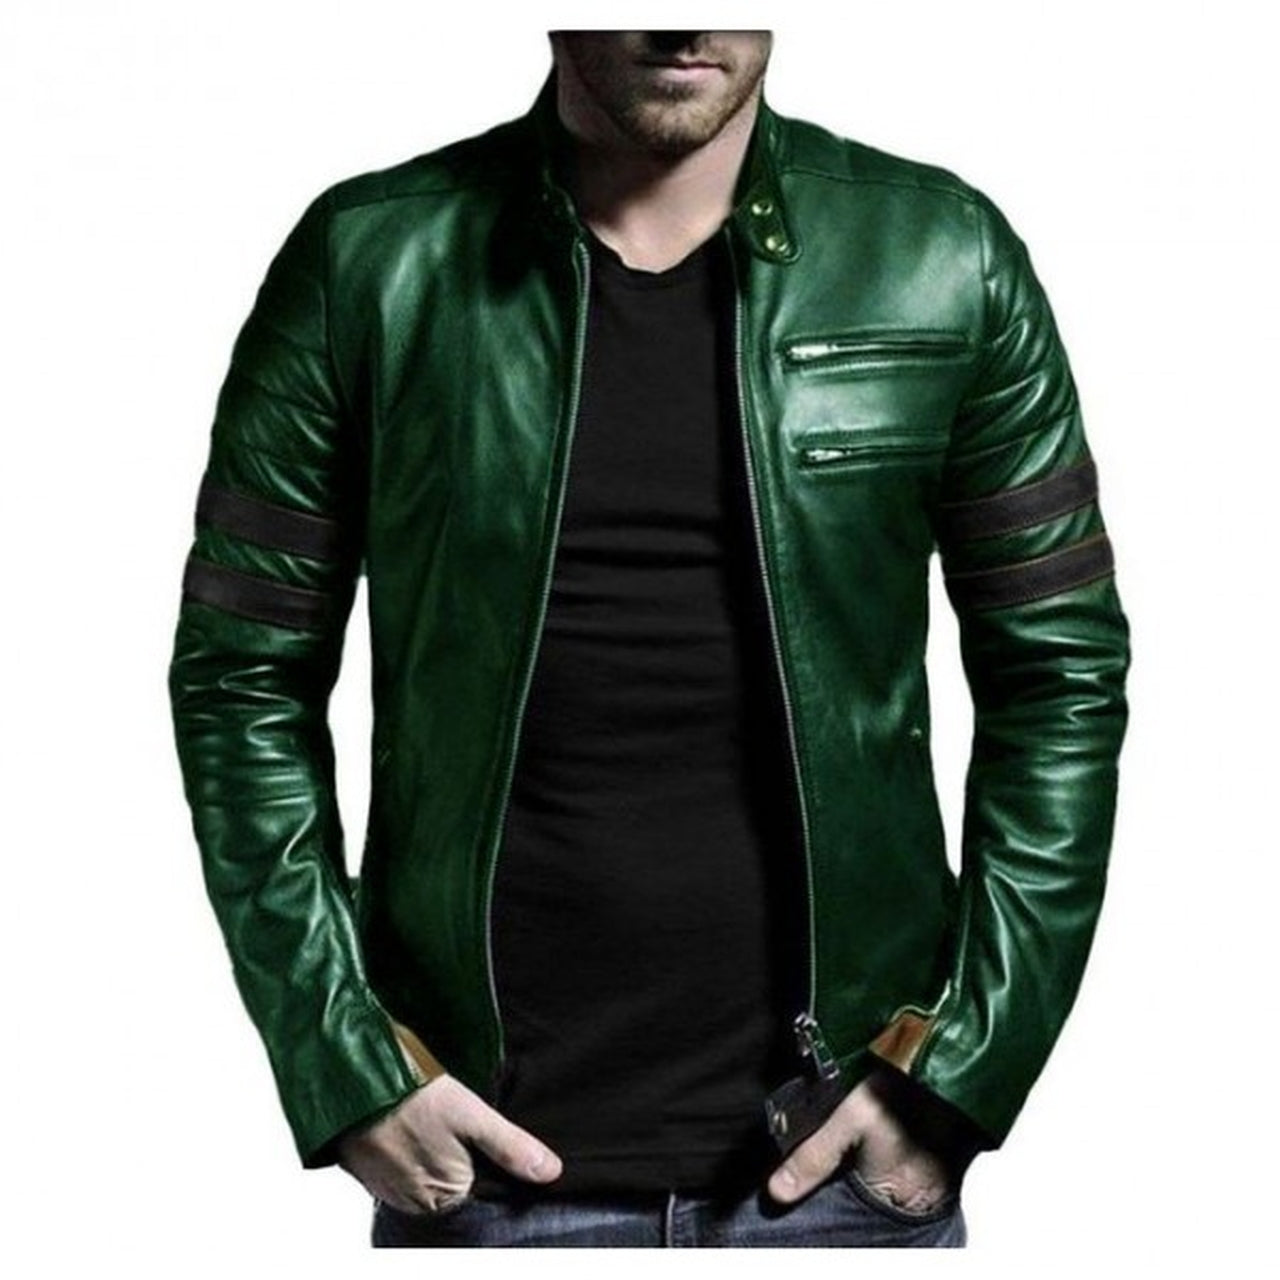 Genuine Leather Jacket For Winter In Green with Black Strip